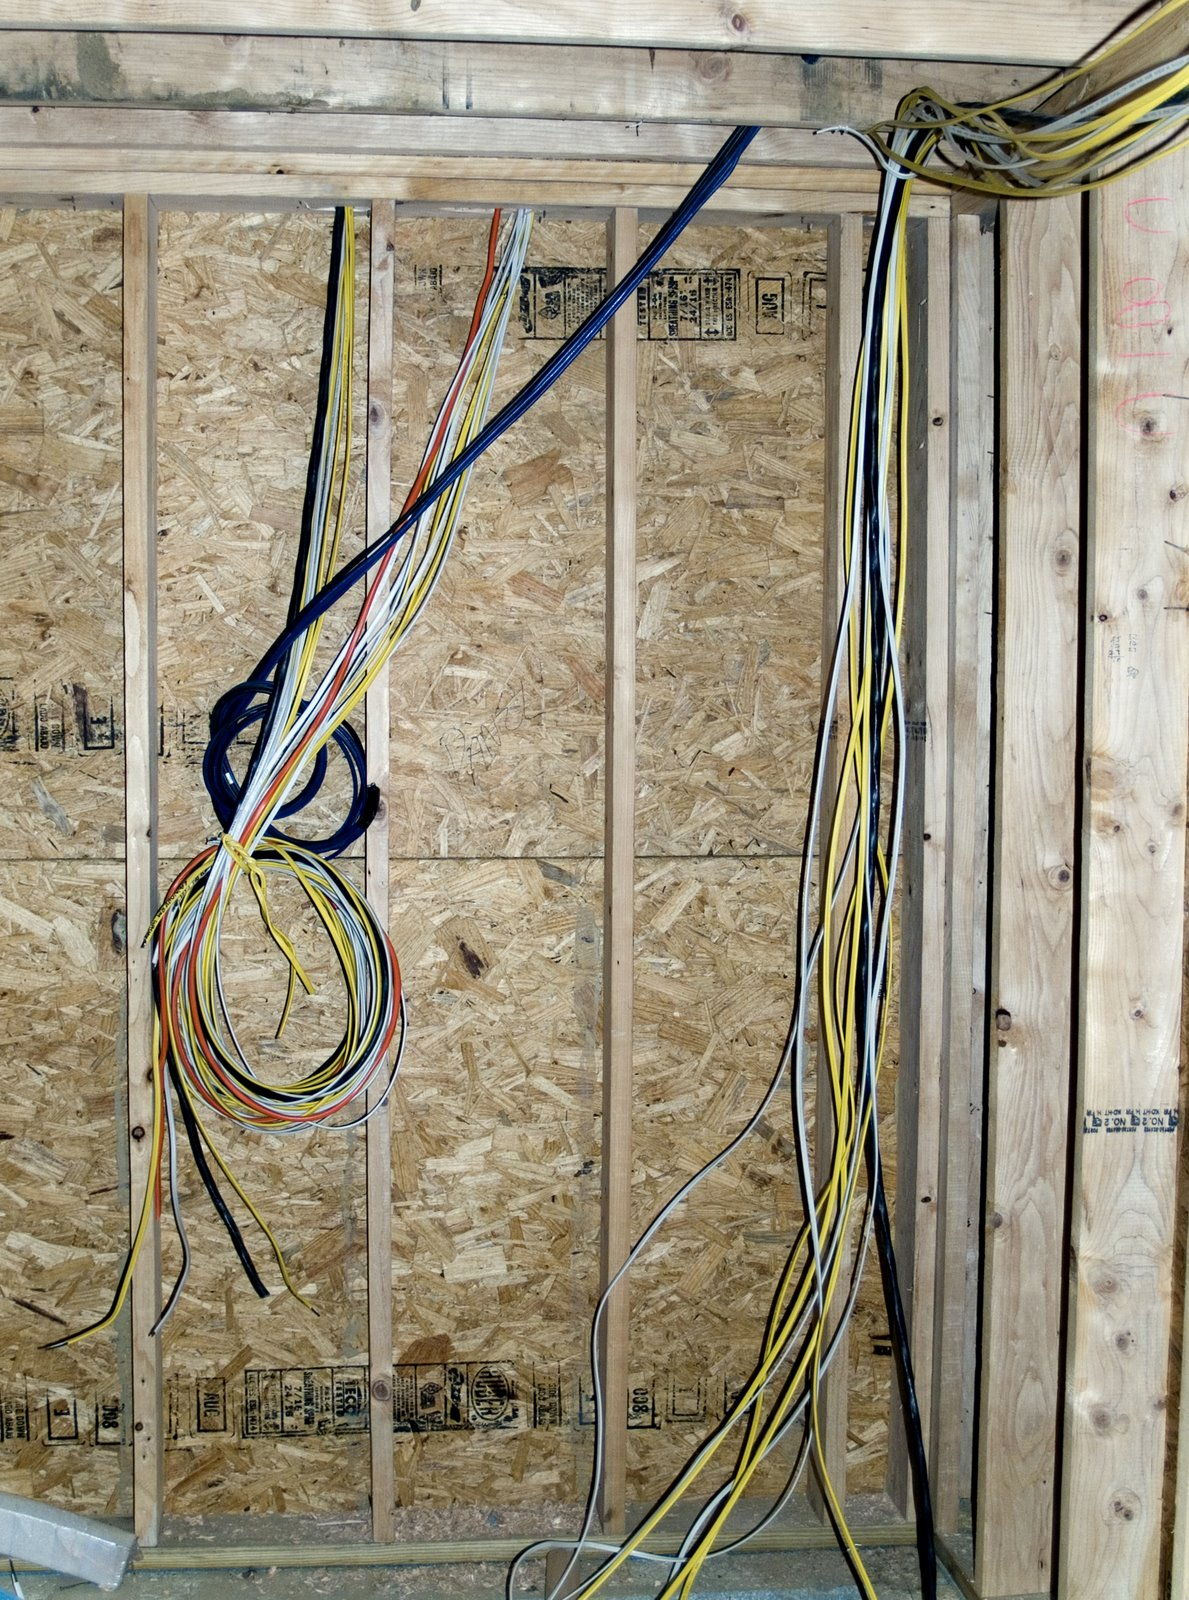 Its Electric Wiring Continues Whole House Renovation Addition P B Wires Running To Electrical Panels In The Basement Left And Garage Right Will Be Covered With Drywall This Week See Wad Of Blue White